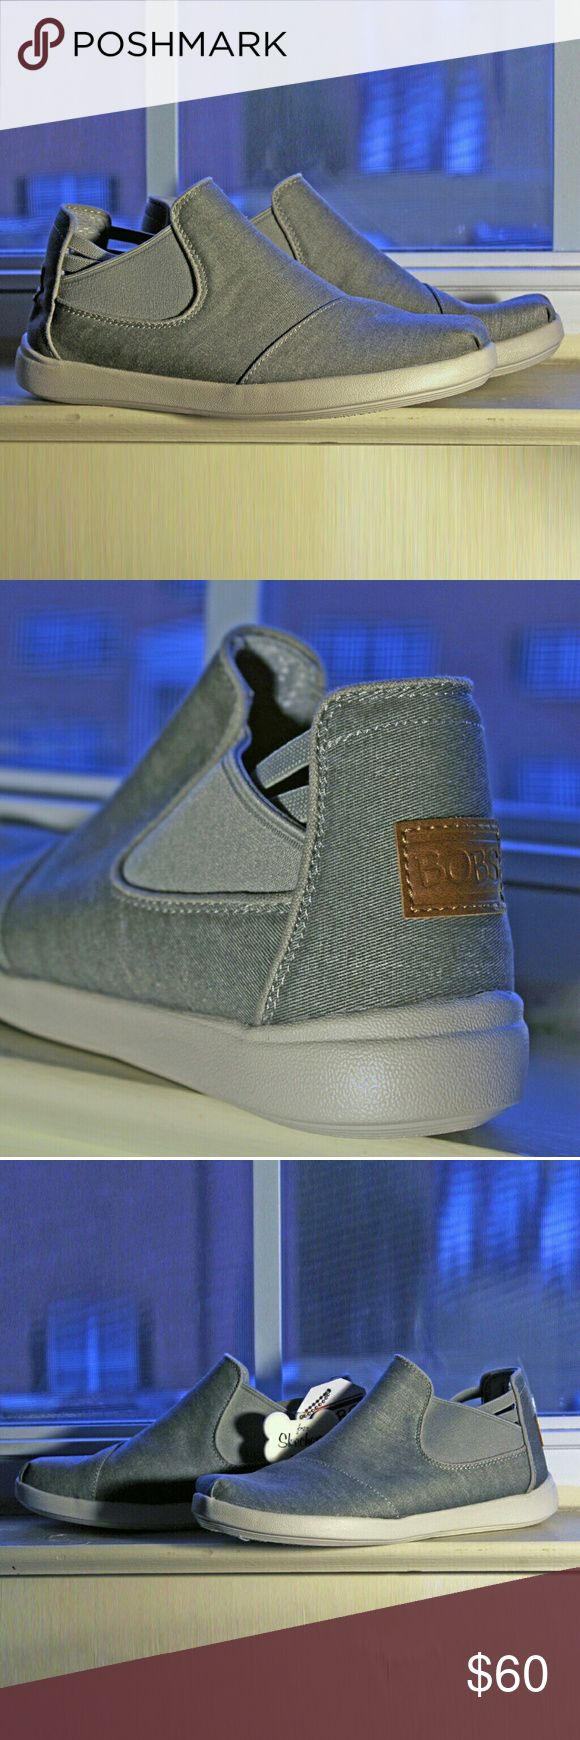 Skechers BOBS Bliss 2.0 Restart Flat (gray) Never been worn. Comfortable Memory Foam insole Lightly distressed soft woven canvas fabric upper with stretch fabric side panels Slip on mid high top casual comfort flat Skechers Bobs 34338 BOBS by Skechers Shoes